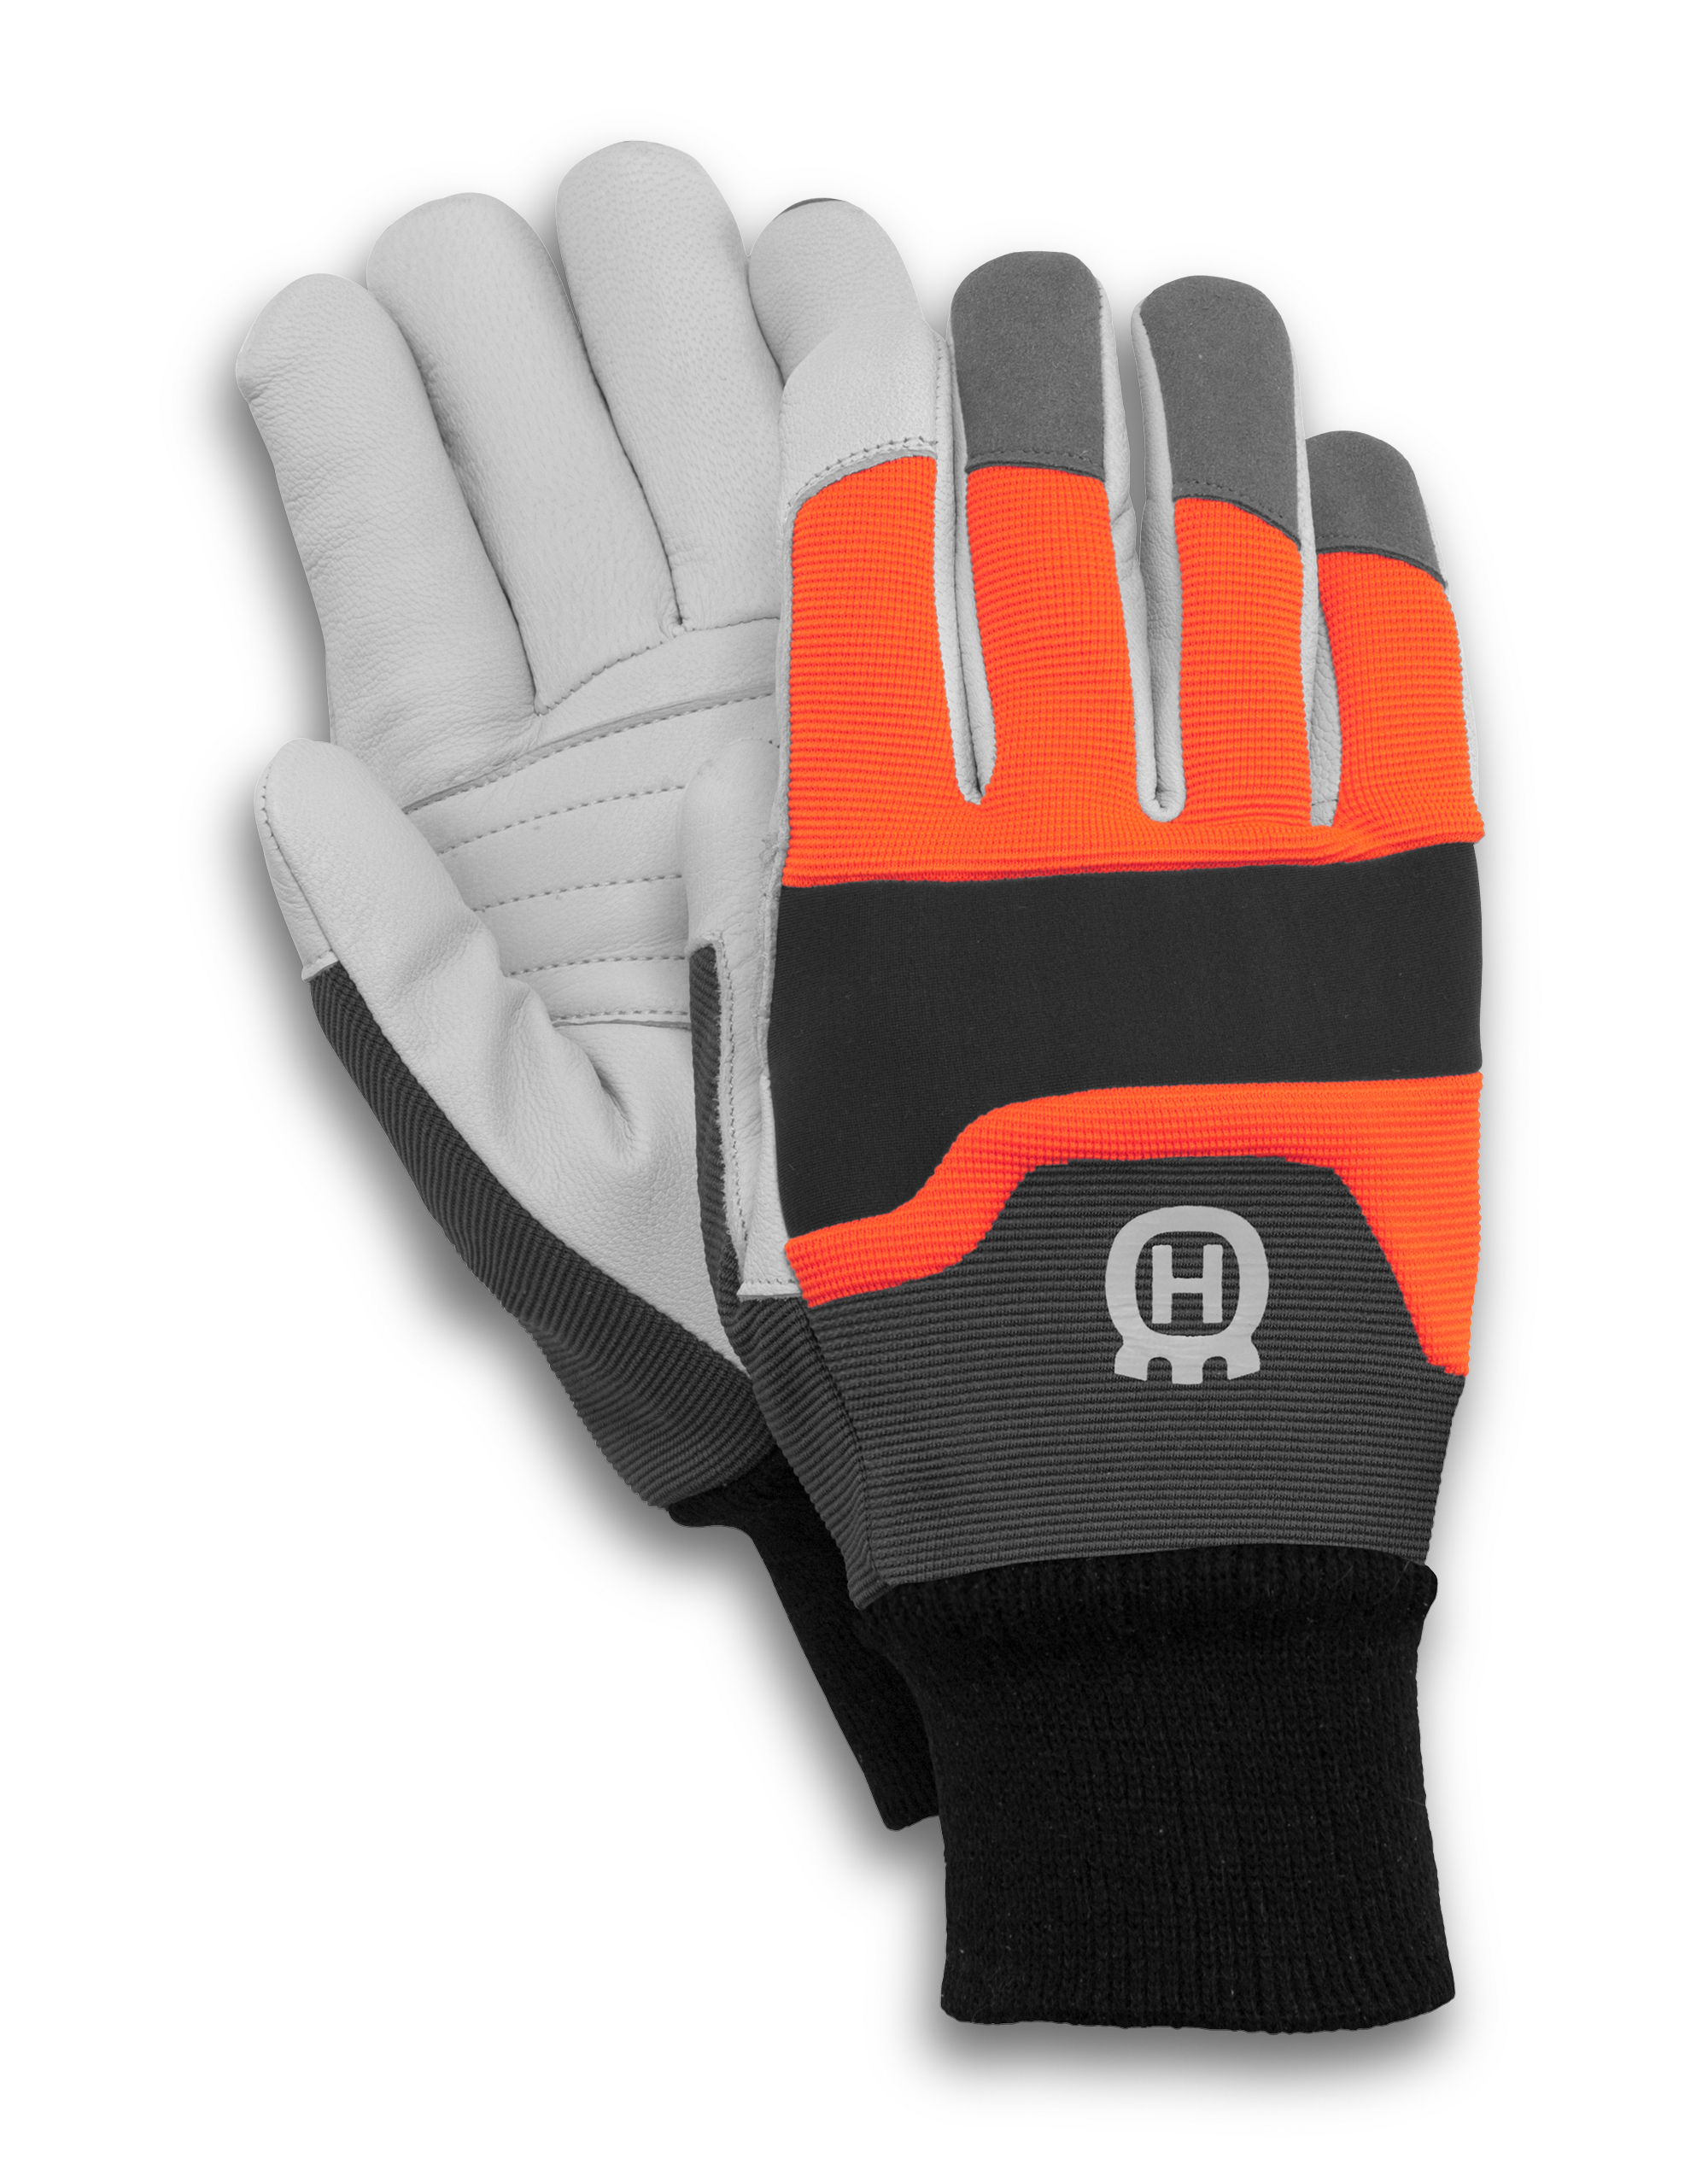 Image for Functional Chainsaw Protection Gloves                                                                                            from HusqvarnaB2C